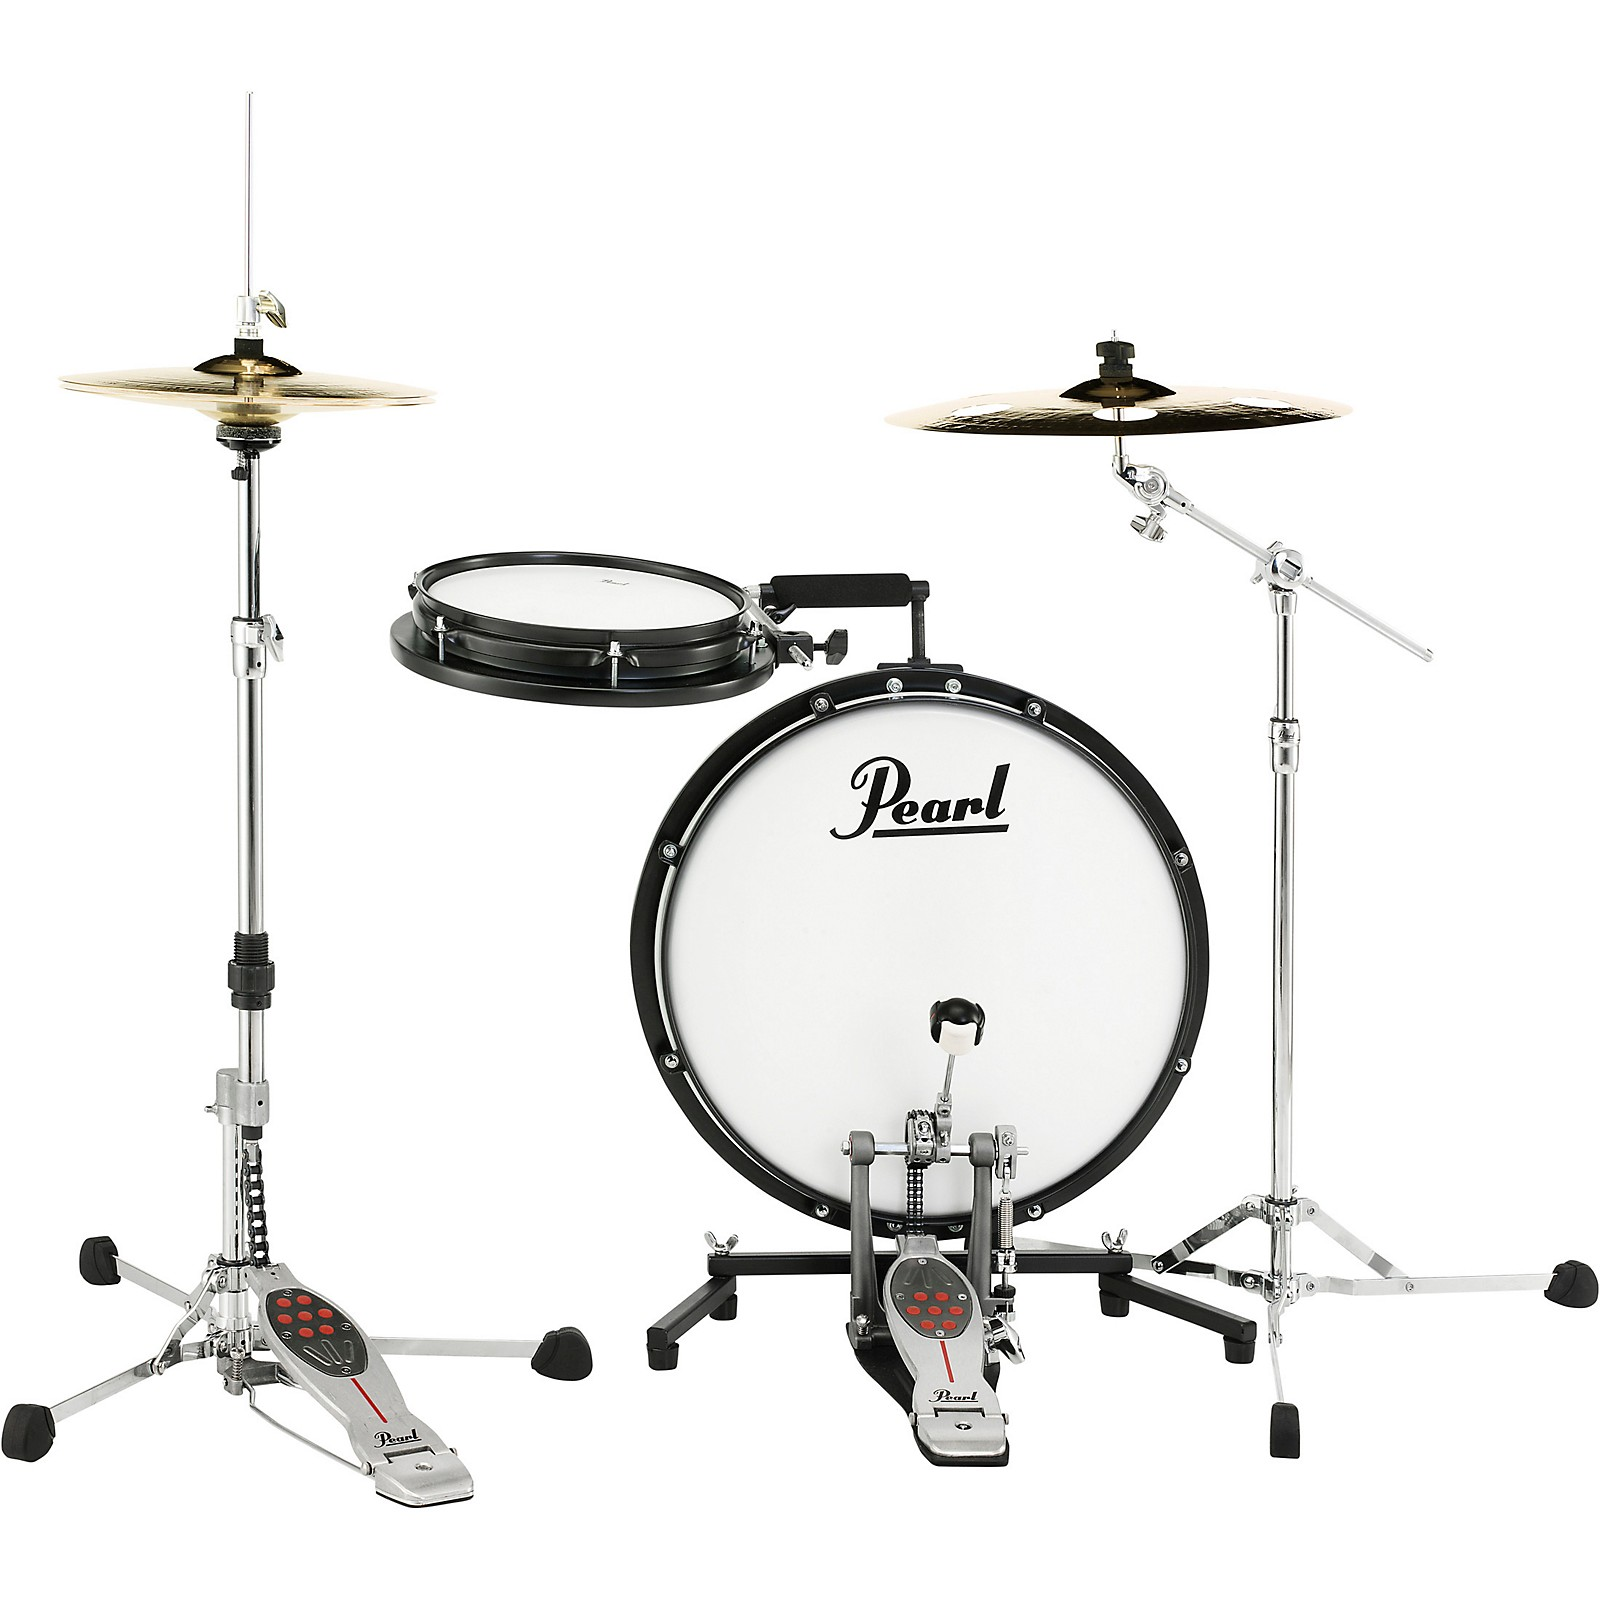 Pearl Compact Traveler 2-Piece Drum Kit